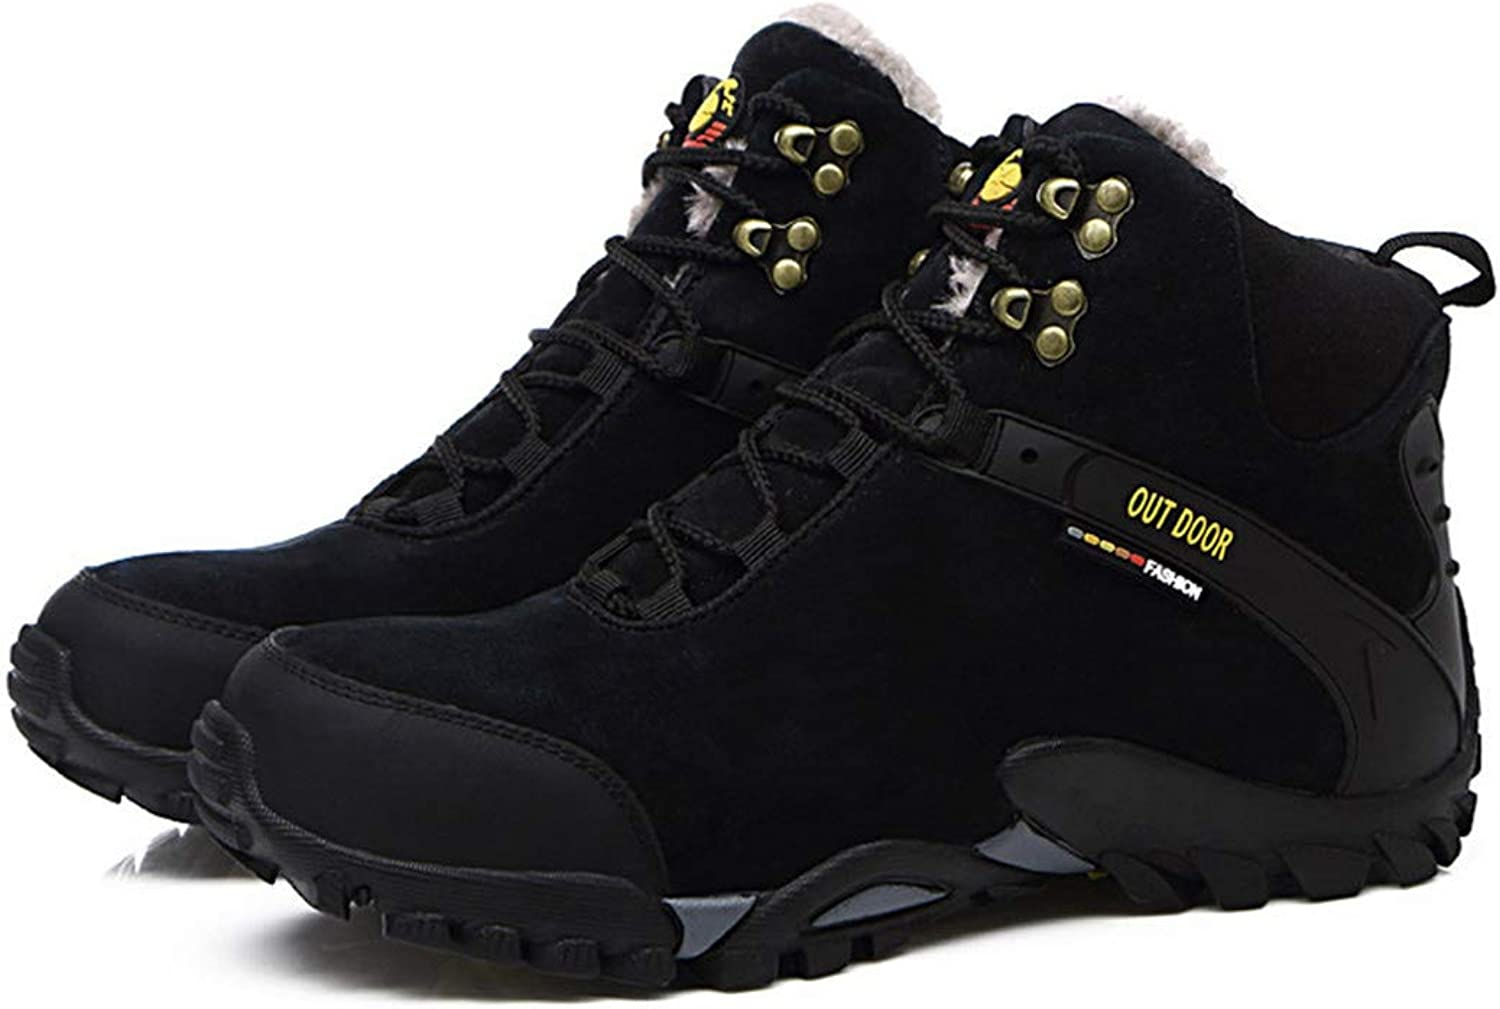 R-Ronthen Waterproof Suede Hiking High to Help Warm Winter Hiking Camping shoes Snow-Proof Wear-Resistant Sneakers